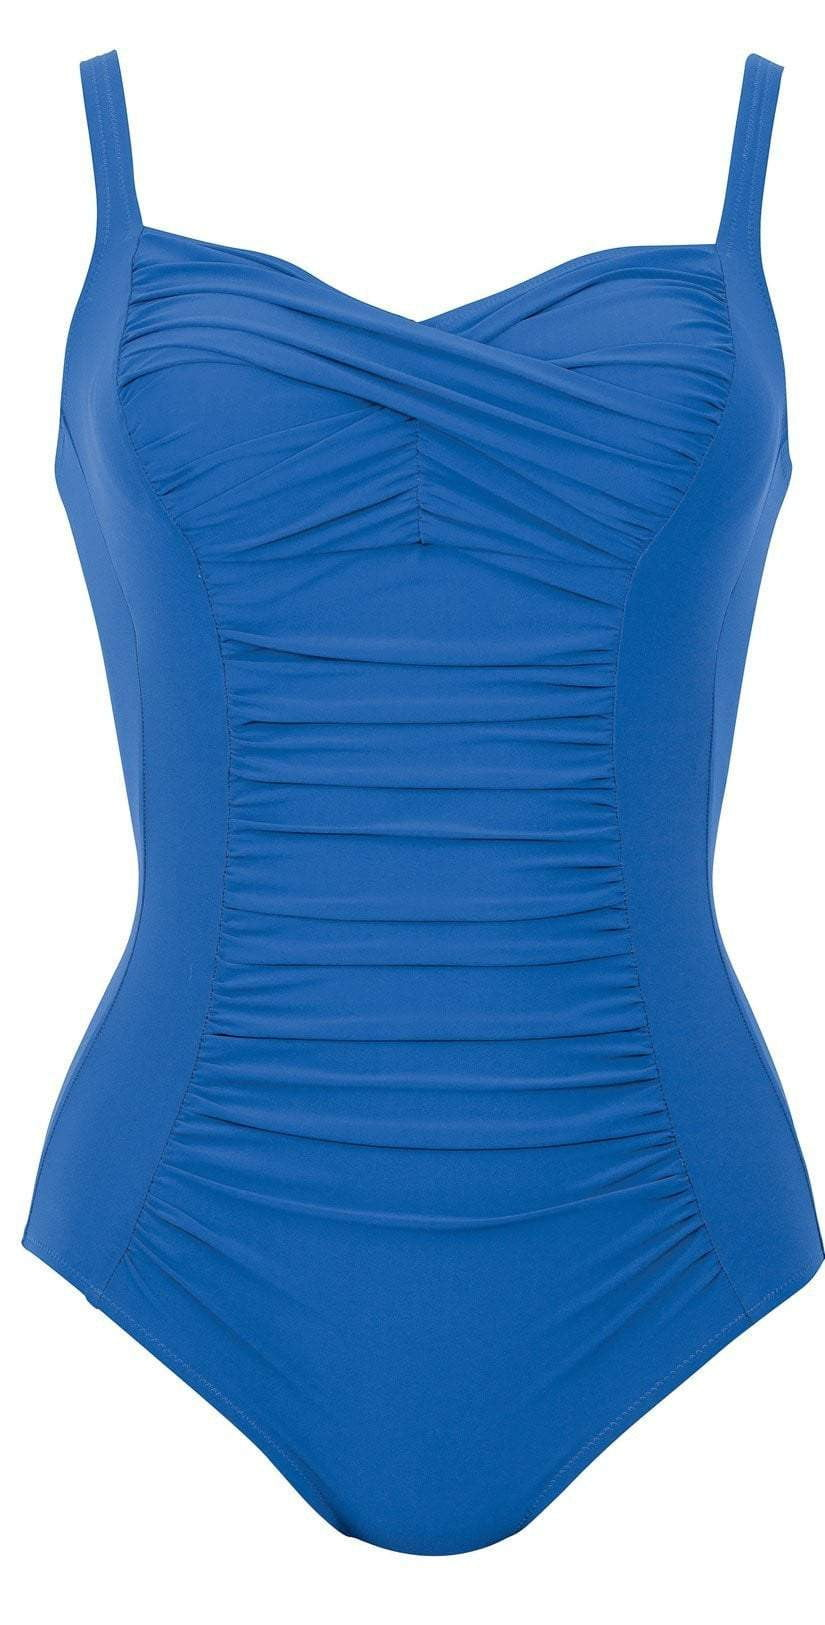 Anita Comfort Michelle One Piece Swimsuit in Blue 7370-354 front studio